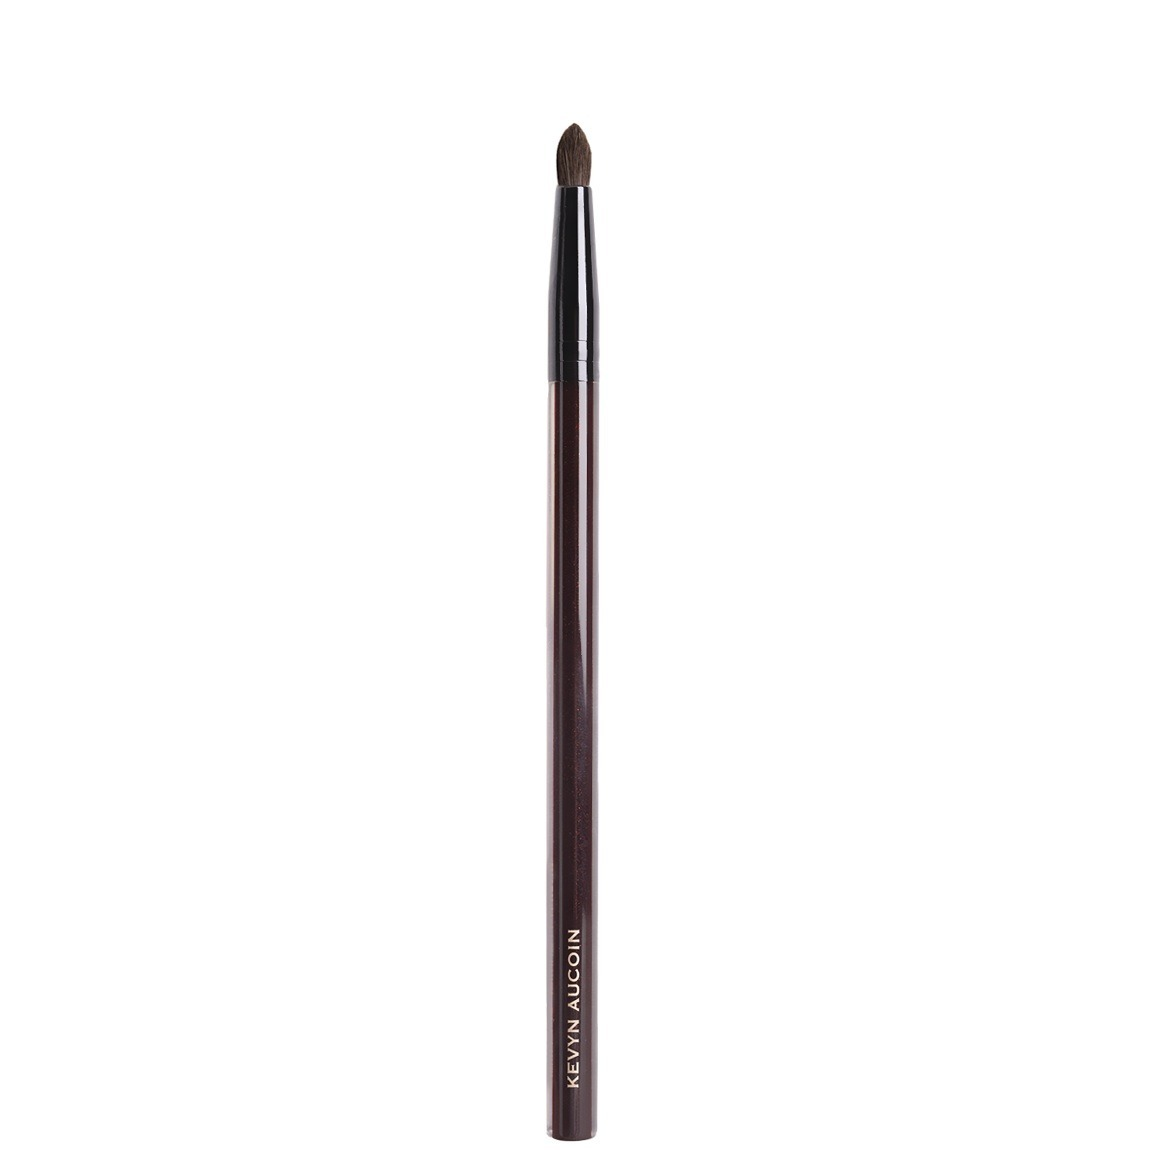 Kevyn Aucoin The Small Eyeshadow and Eyebrow Brush product smear.